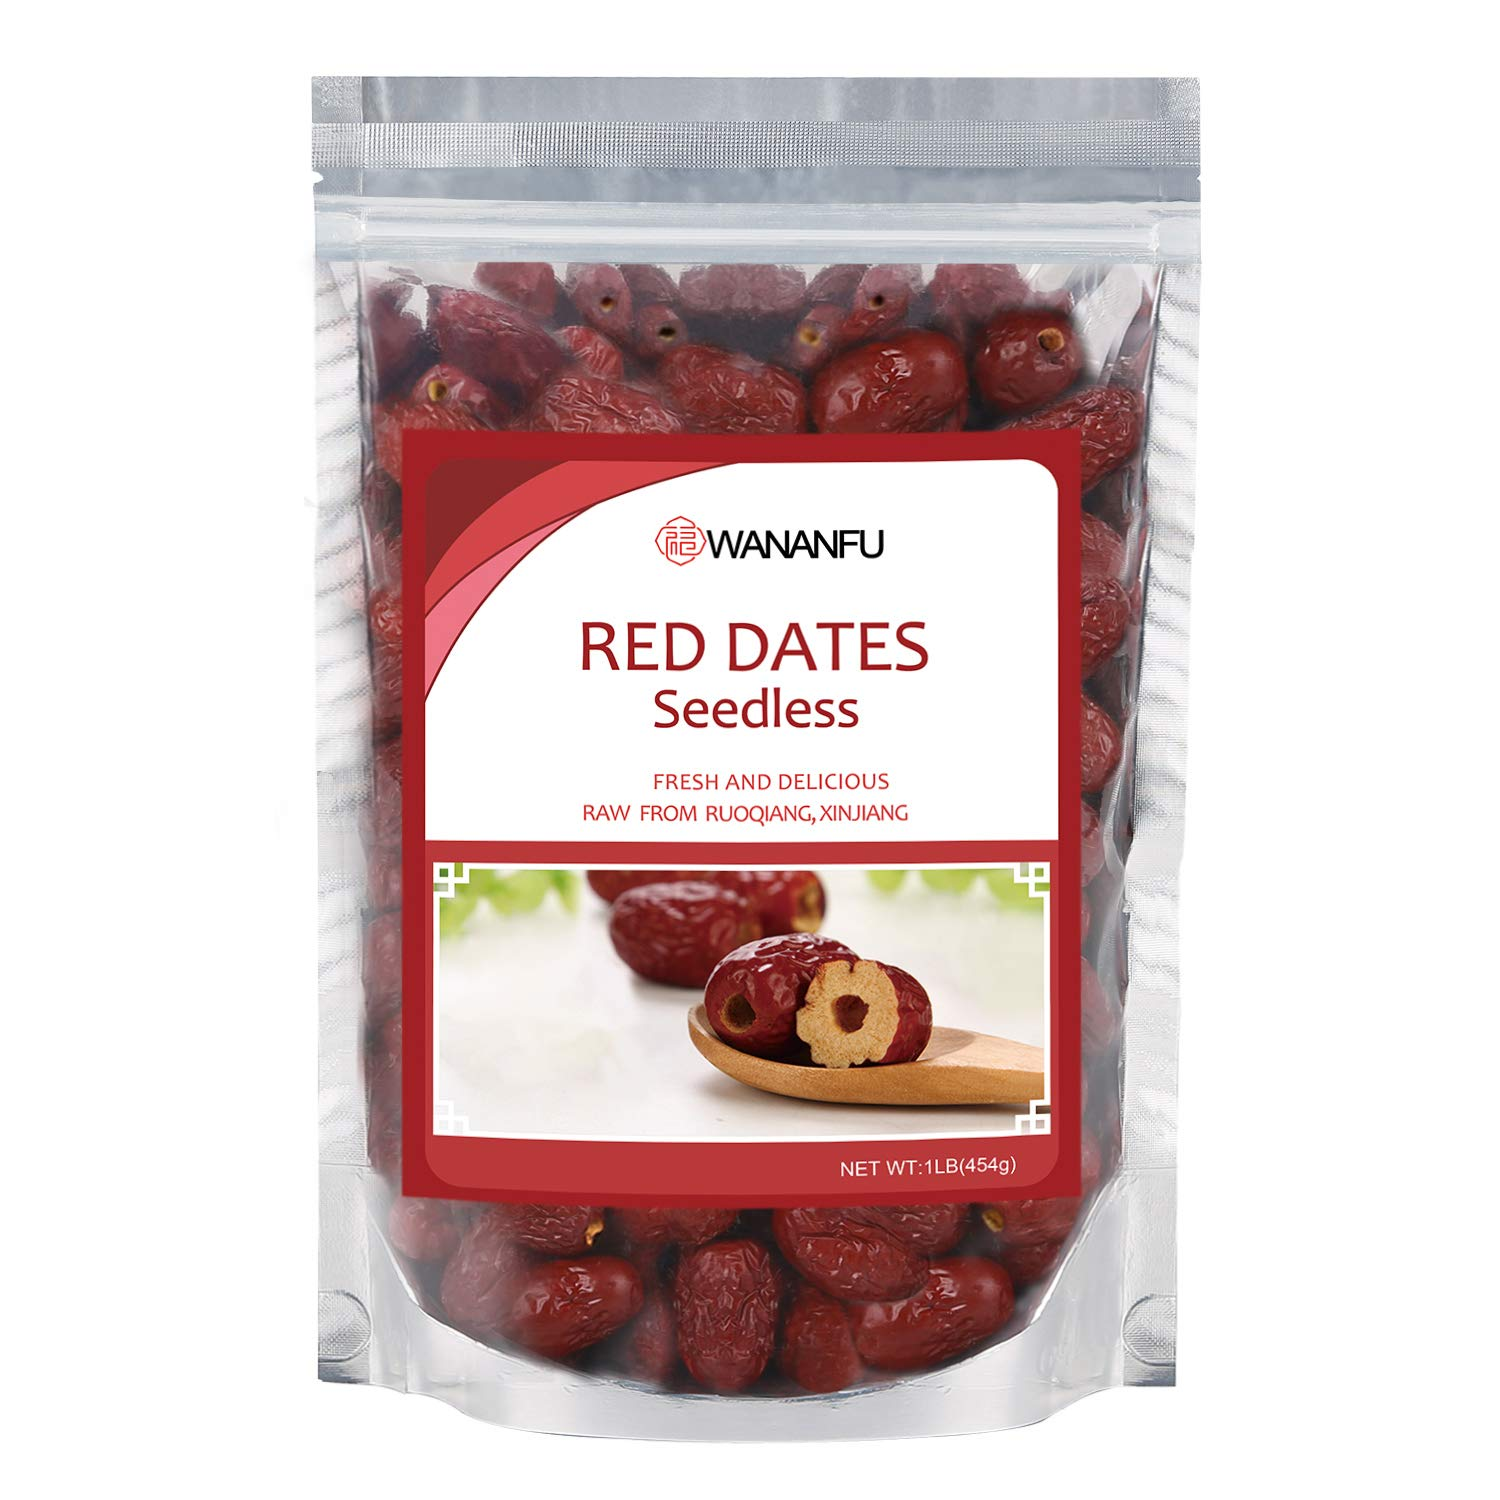 Big Dried Red Dates Seedless From Ogigin Place Ruoqiang Natual Dried CHINESE DATES No Sugar Added- Superfoods Dried JUJUBE DATES 1lb Bag